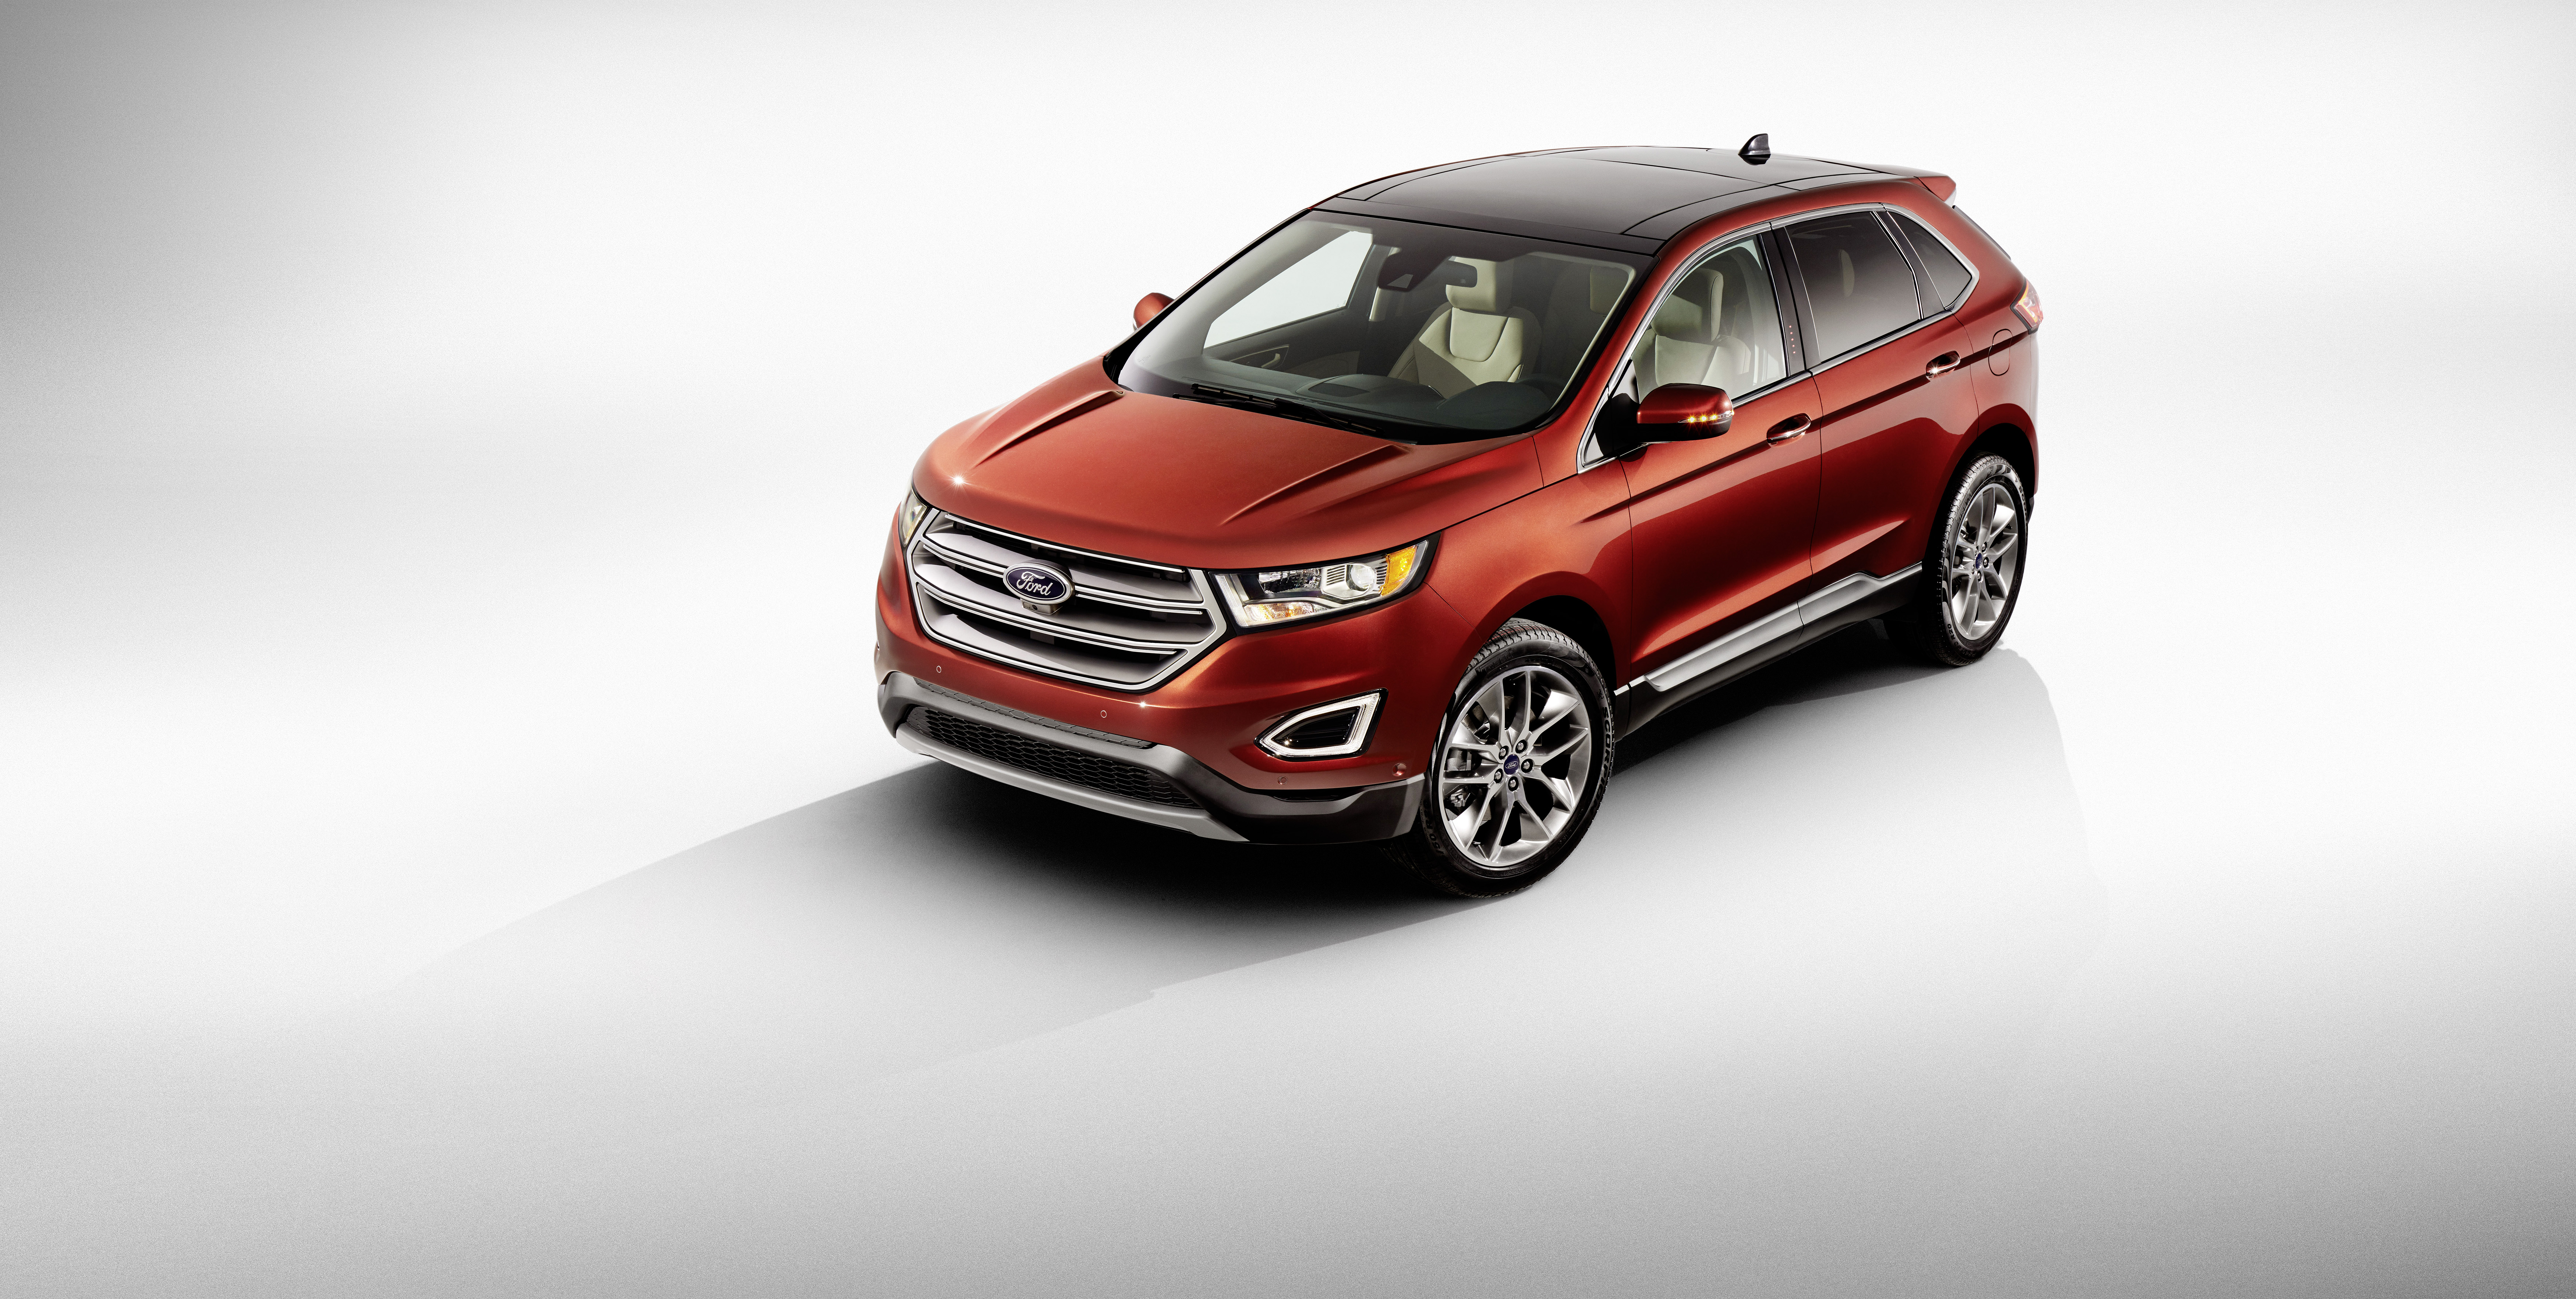 2015 Ford Edge 2.0 EcoBoost Twin-Scroll Turbo Engine Detailed - autoevolution